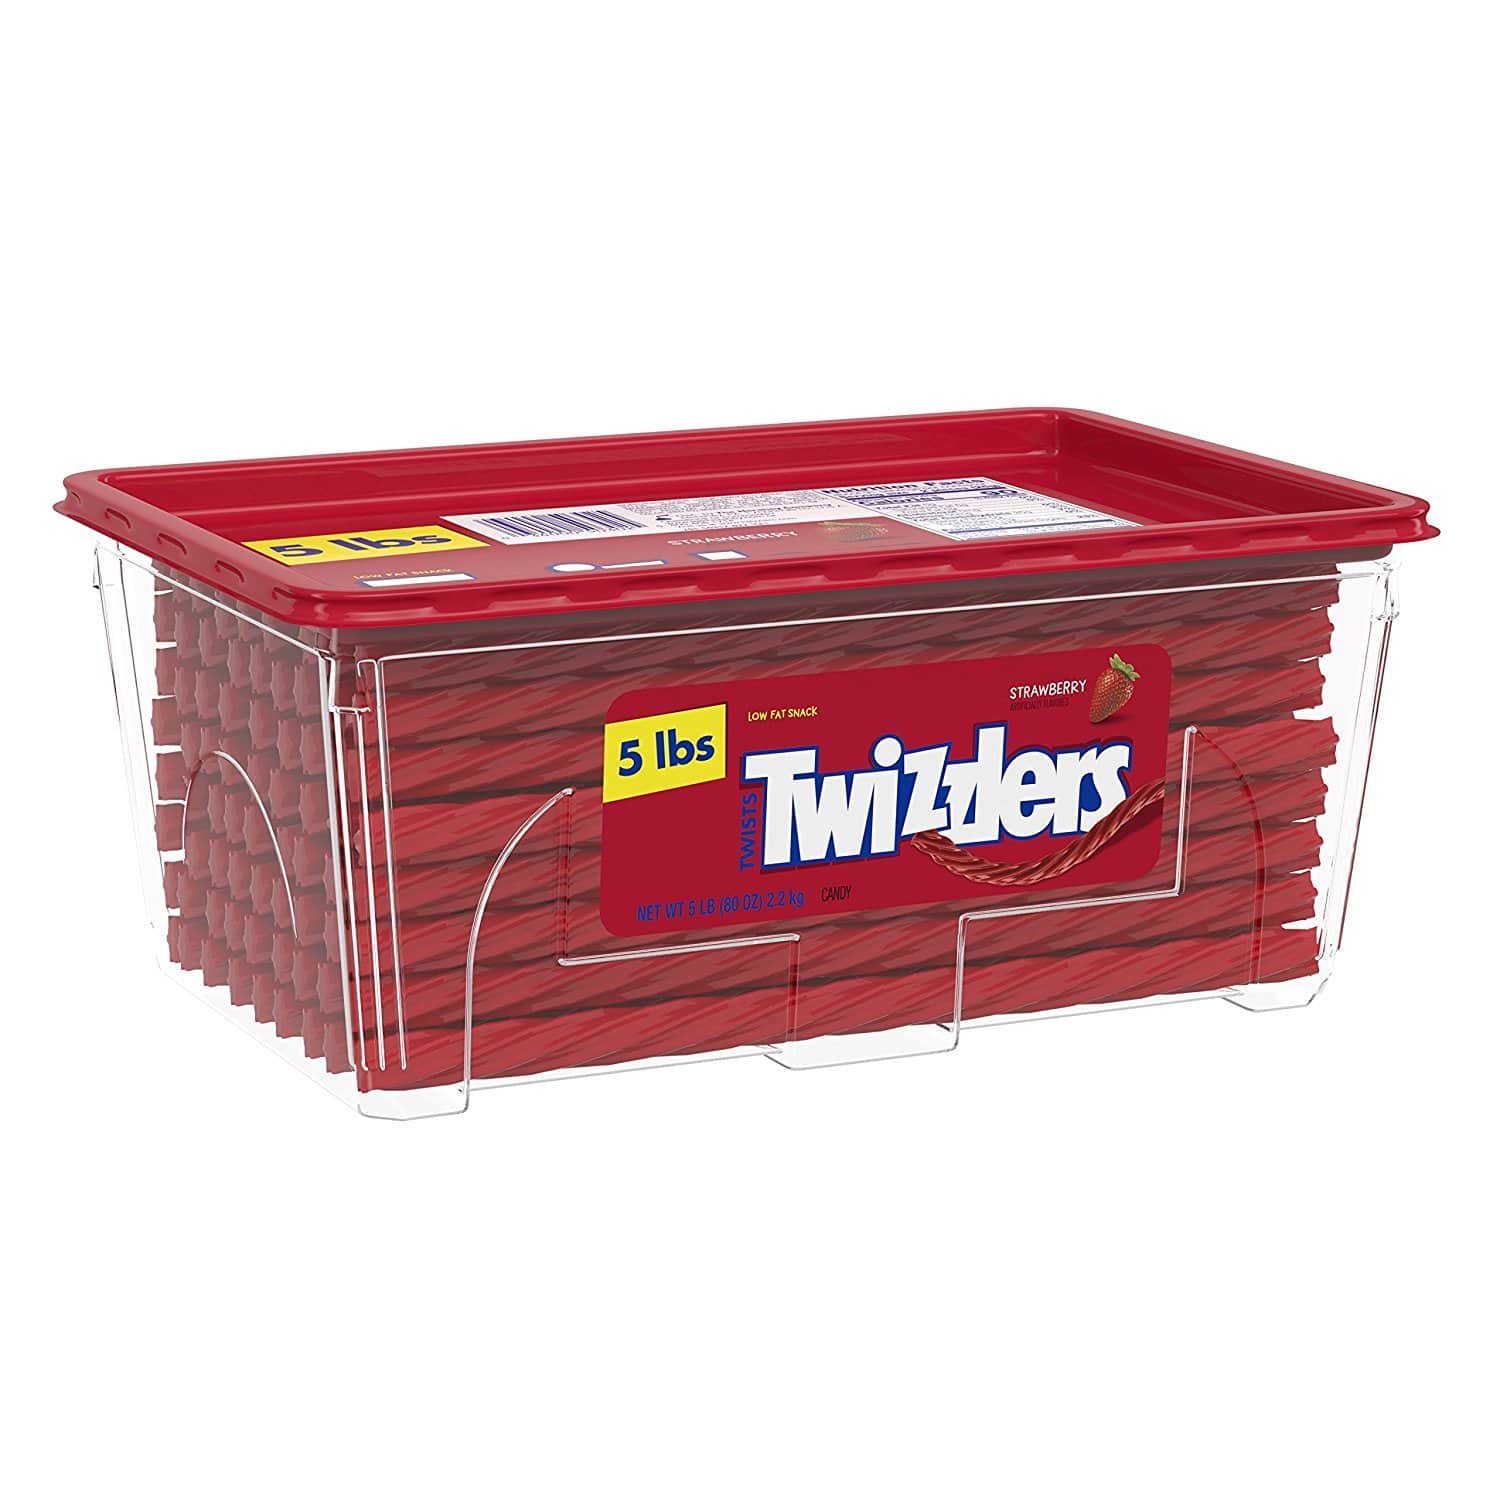 TWIZZLERS Licorice Candy, Halloween Candy, Strawberry, 5 Pound - $8.40 @ Amazon.com w/S&S